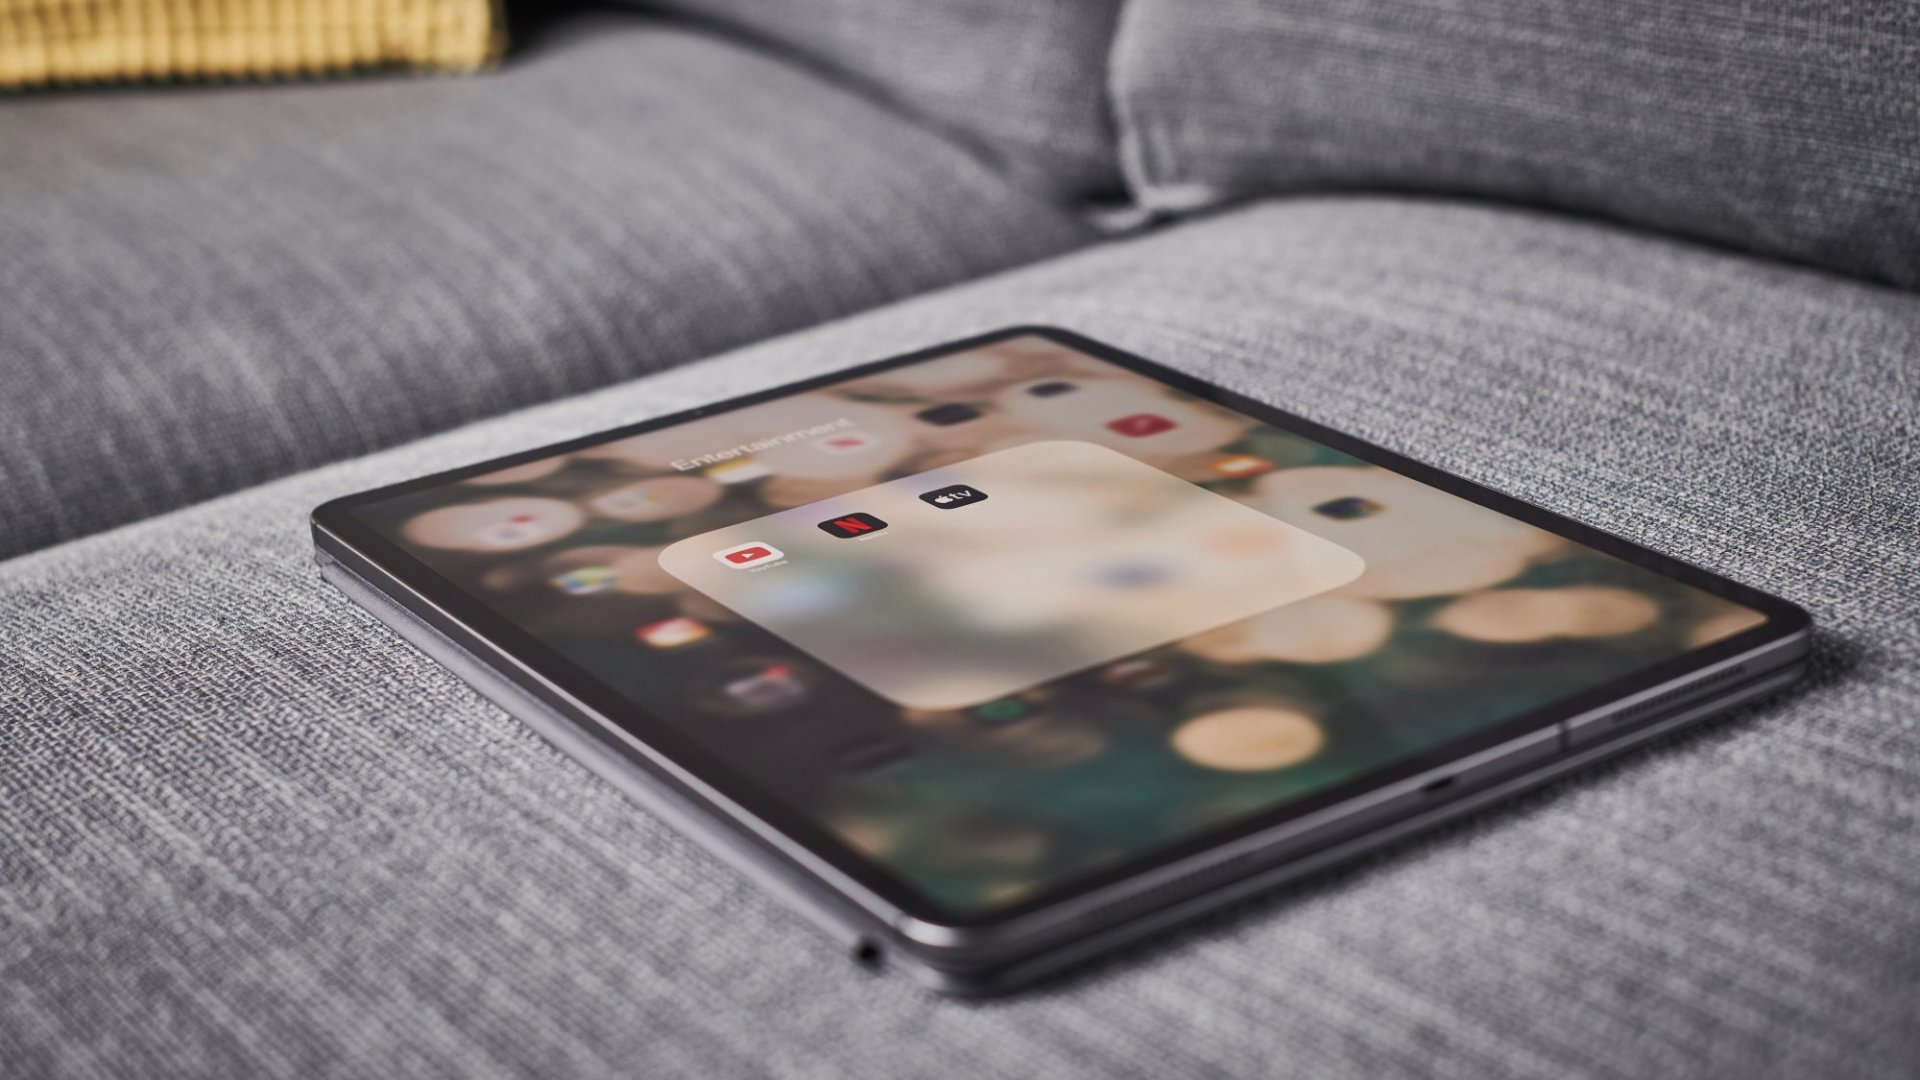 Why an iPad-Inspired iPhone Design Is a Good Move